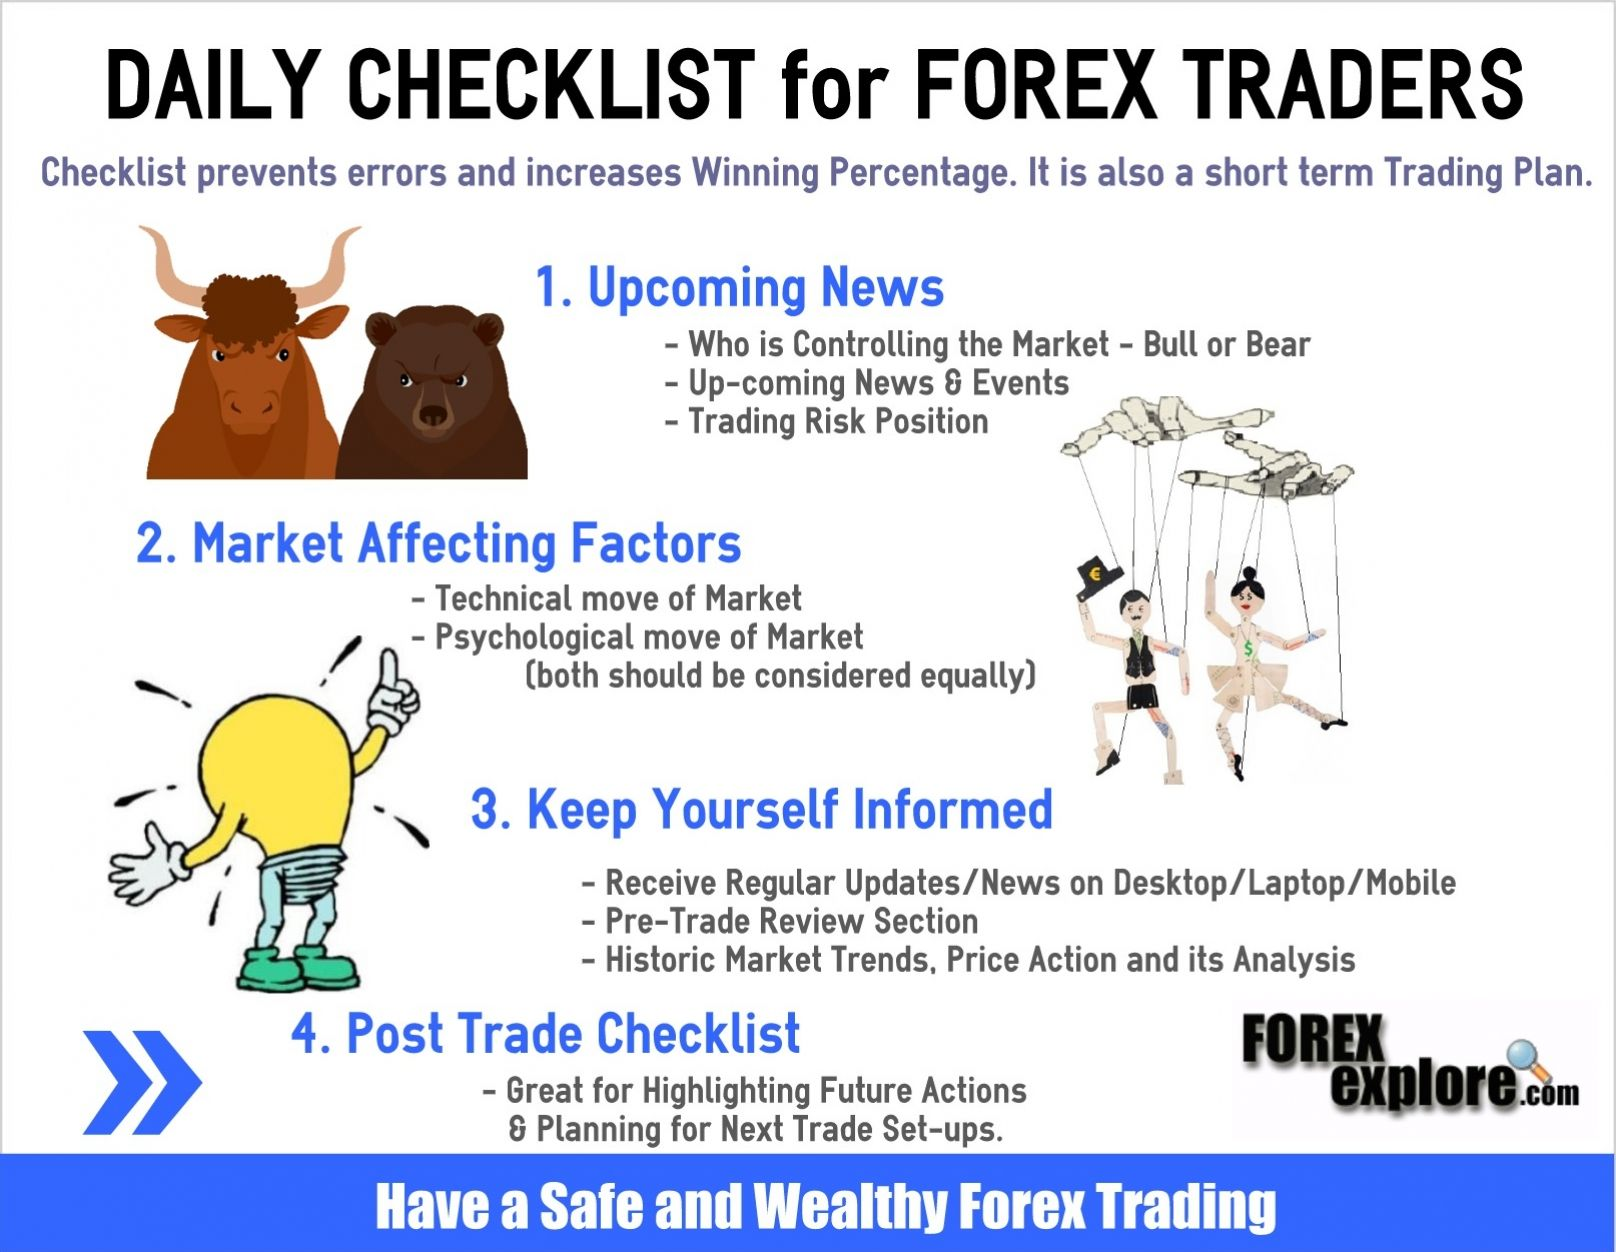 Daily Checklist For Forex Traders Www Forexexplore Com Daily